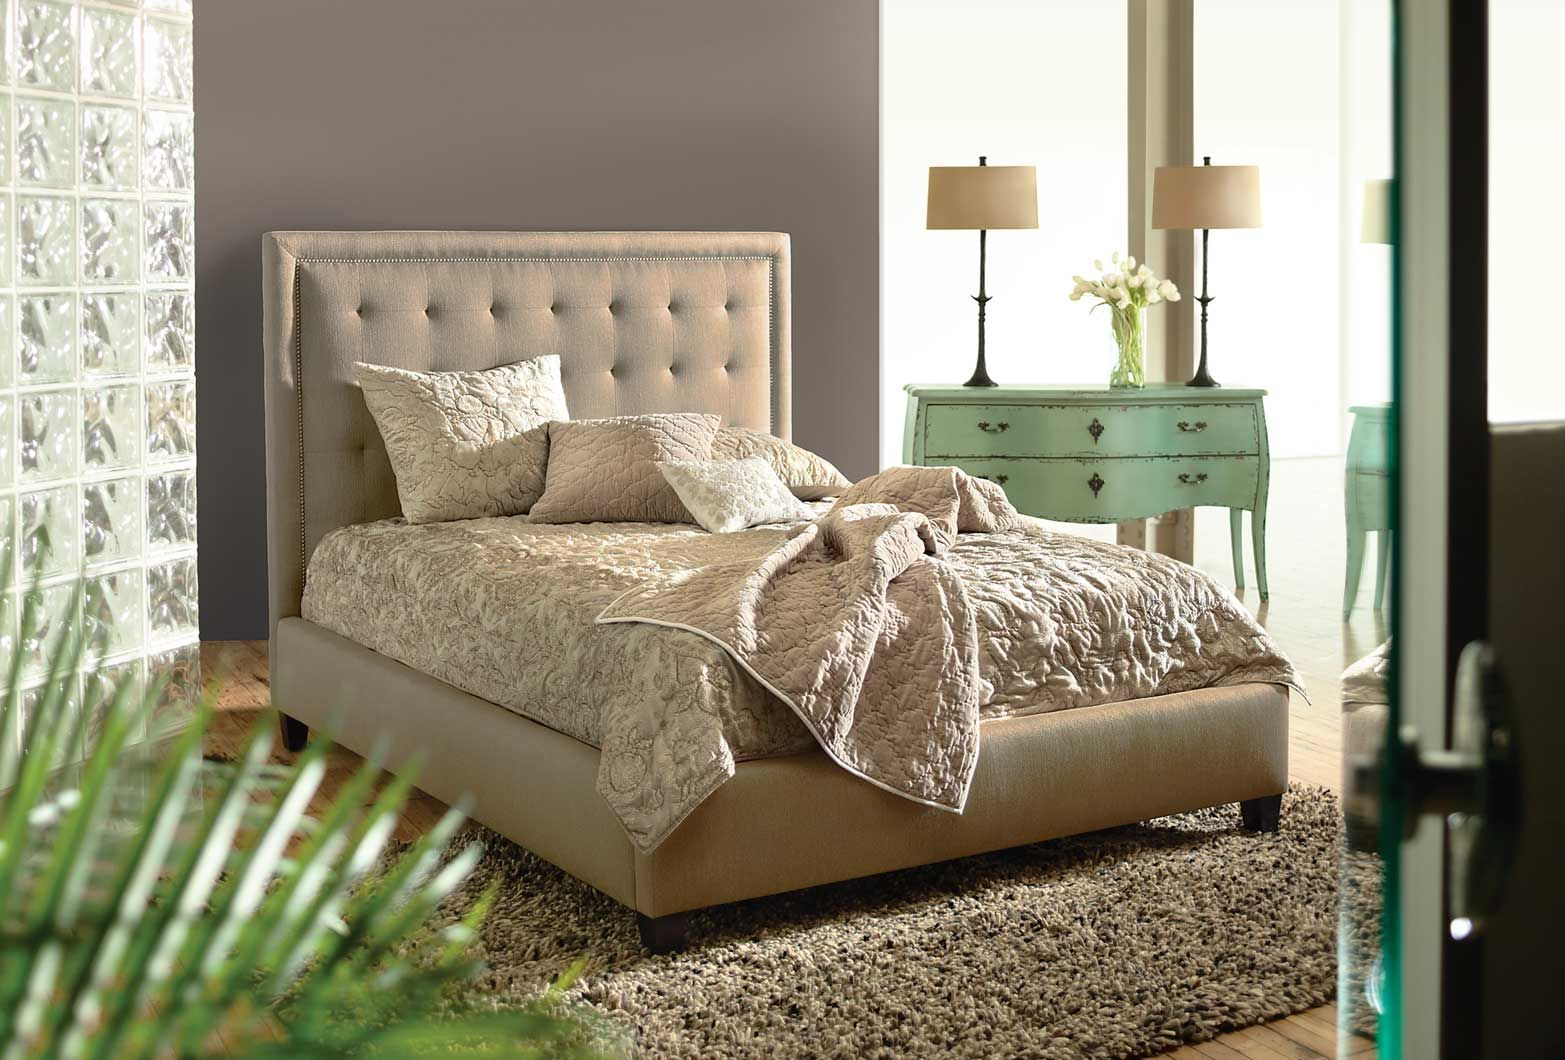 Love the wall color headboard and turquiose accent pieces